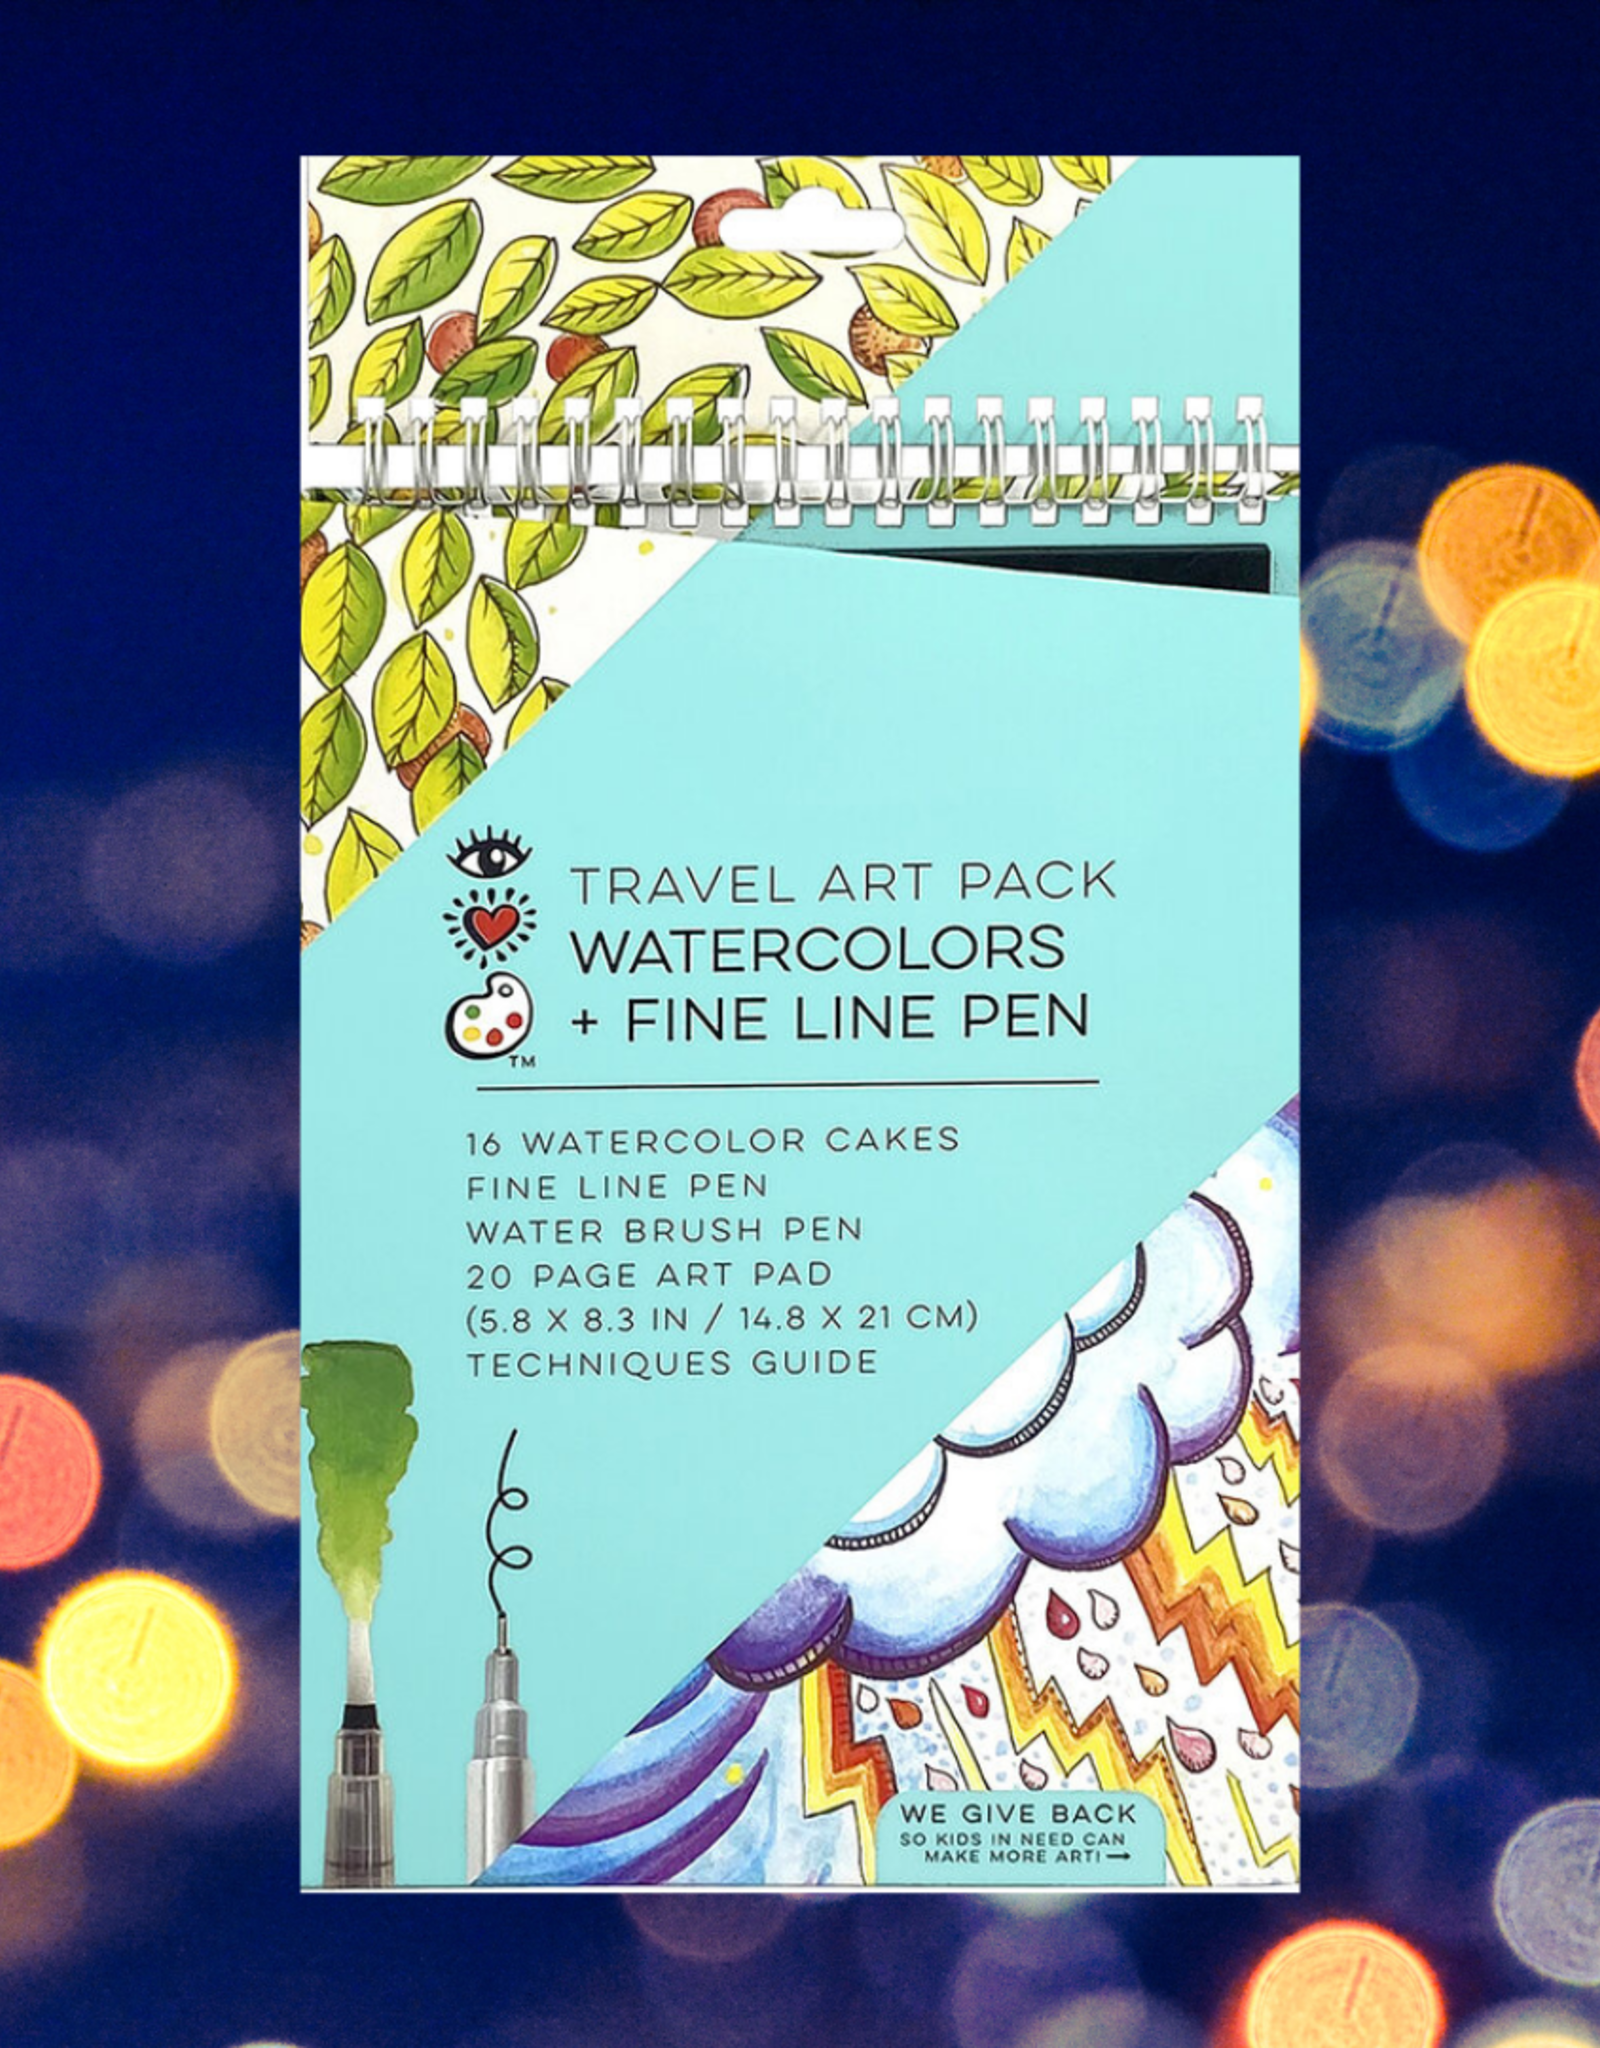 I HEART ART TRAVEL ART PACK WATERCOLORS + PEN